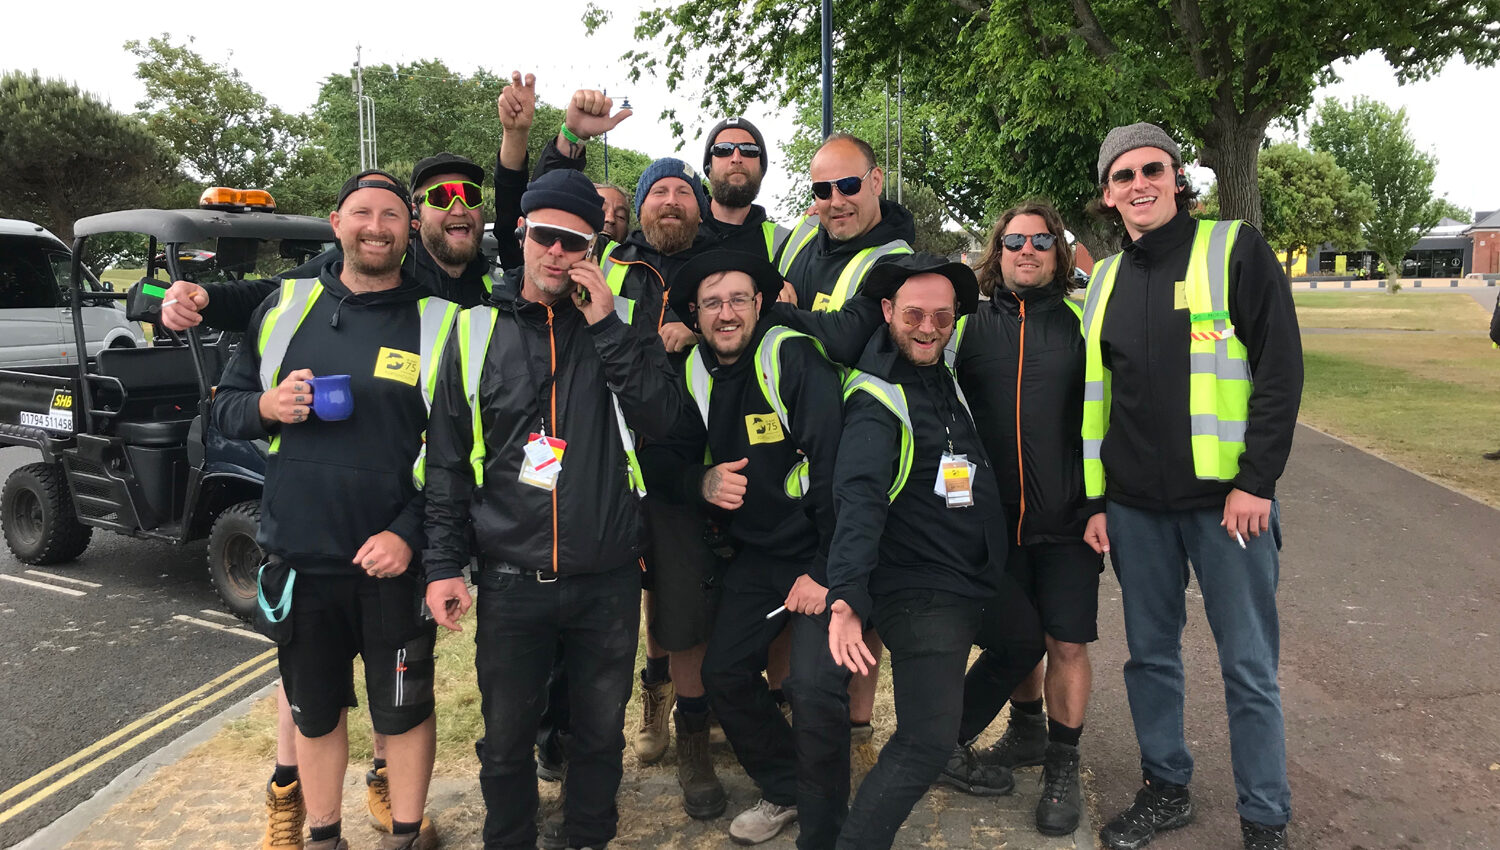 Site Crew Team Photo, D-Day 75 Commemorative Event, 2019 - Site Crew Supplied by Victorious Events